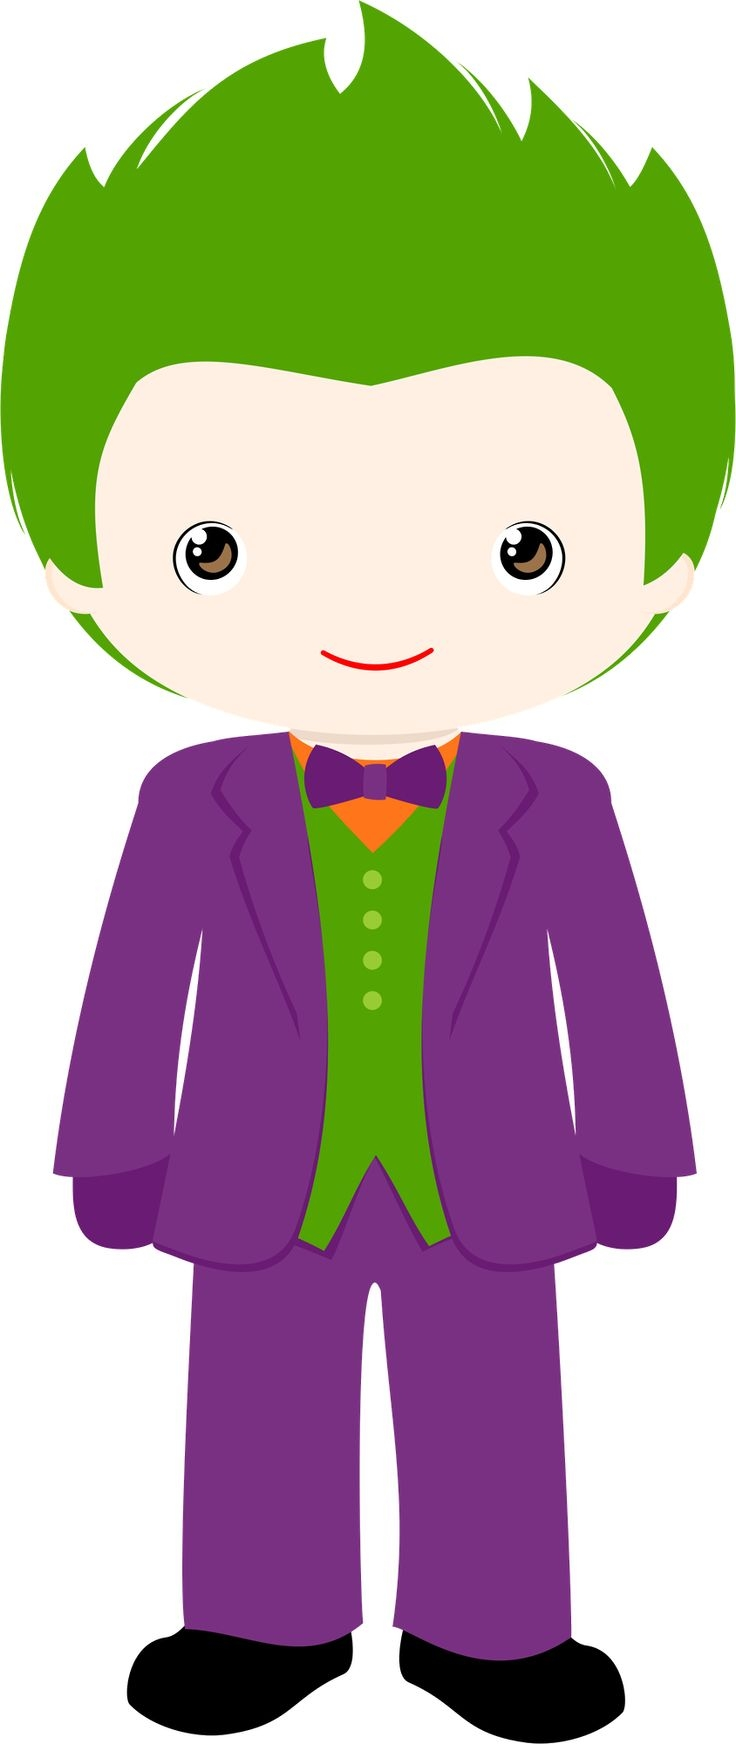 Cute Joker Clipart.